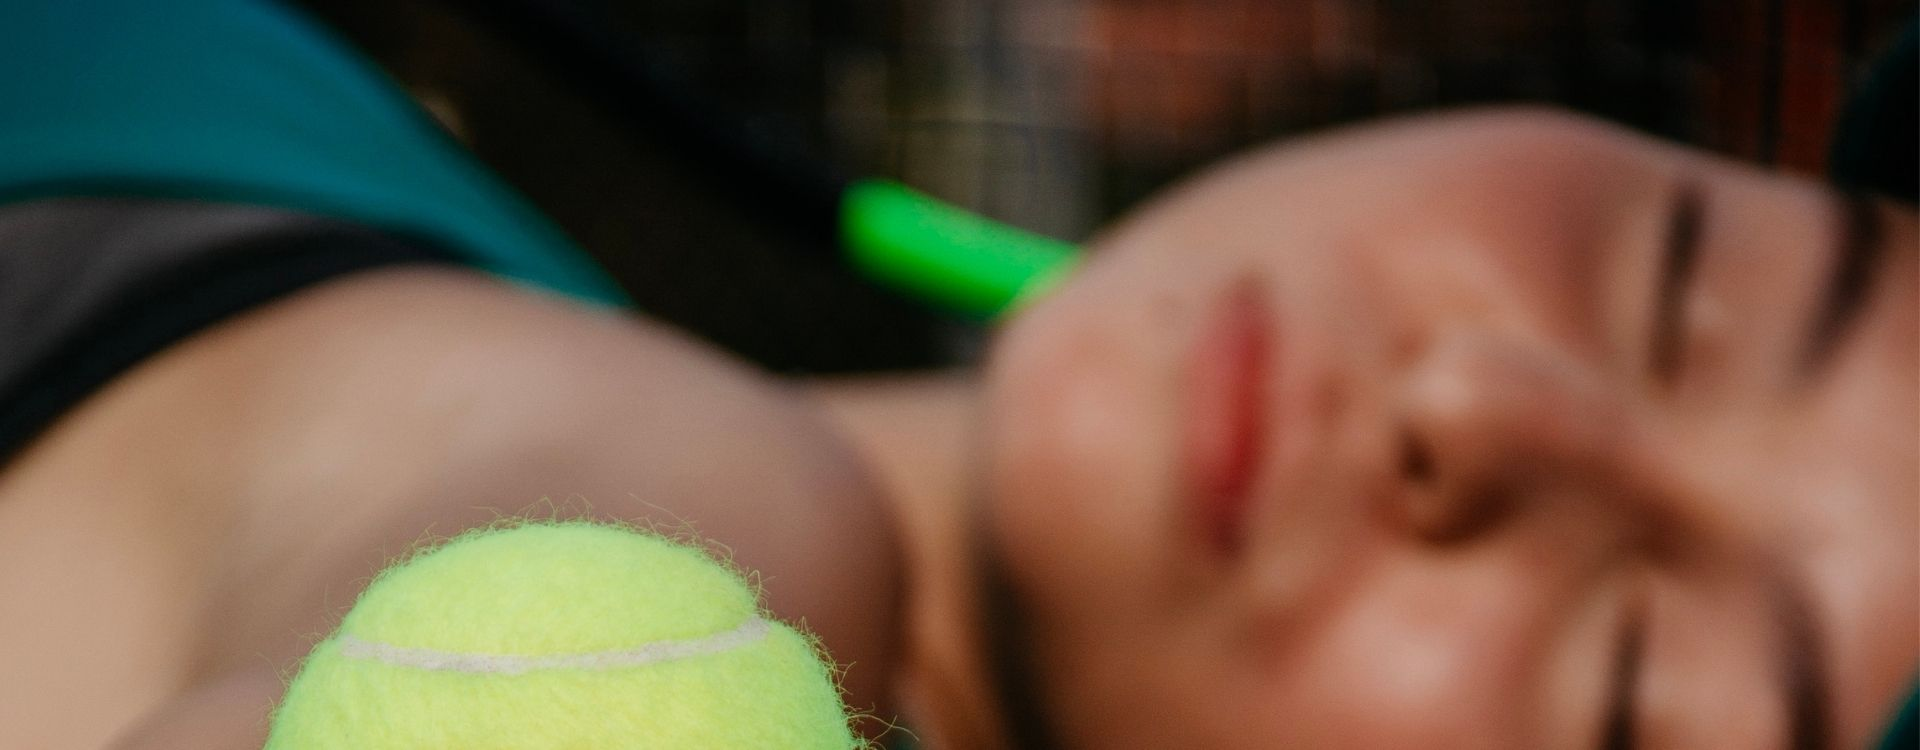 How Much Sleep Does an Athlete Need?